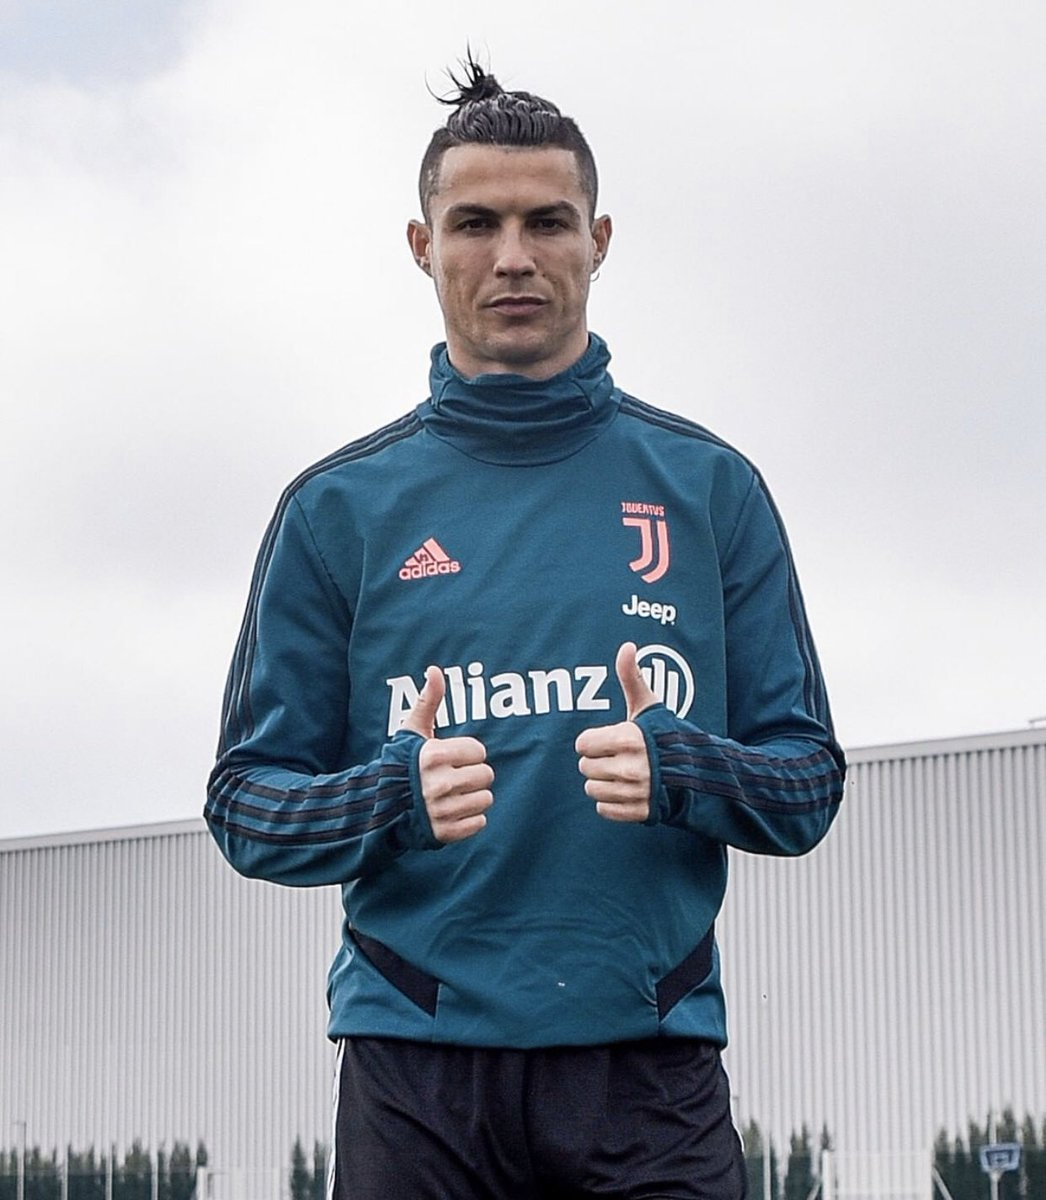 Monday motivation  Remember to stay home, stay healthy and safe  Follow @c_ronaldo_updates on Instagram for latest cr7 updates  #cr7 #sportinglisbon #ronaldo #mufc #juventus #halamadrid #football #portugal #men #greatest #beastmode #cute #ronaldo #followforfollowback pic.twitter.com/izKgg9Cl4A